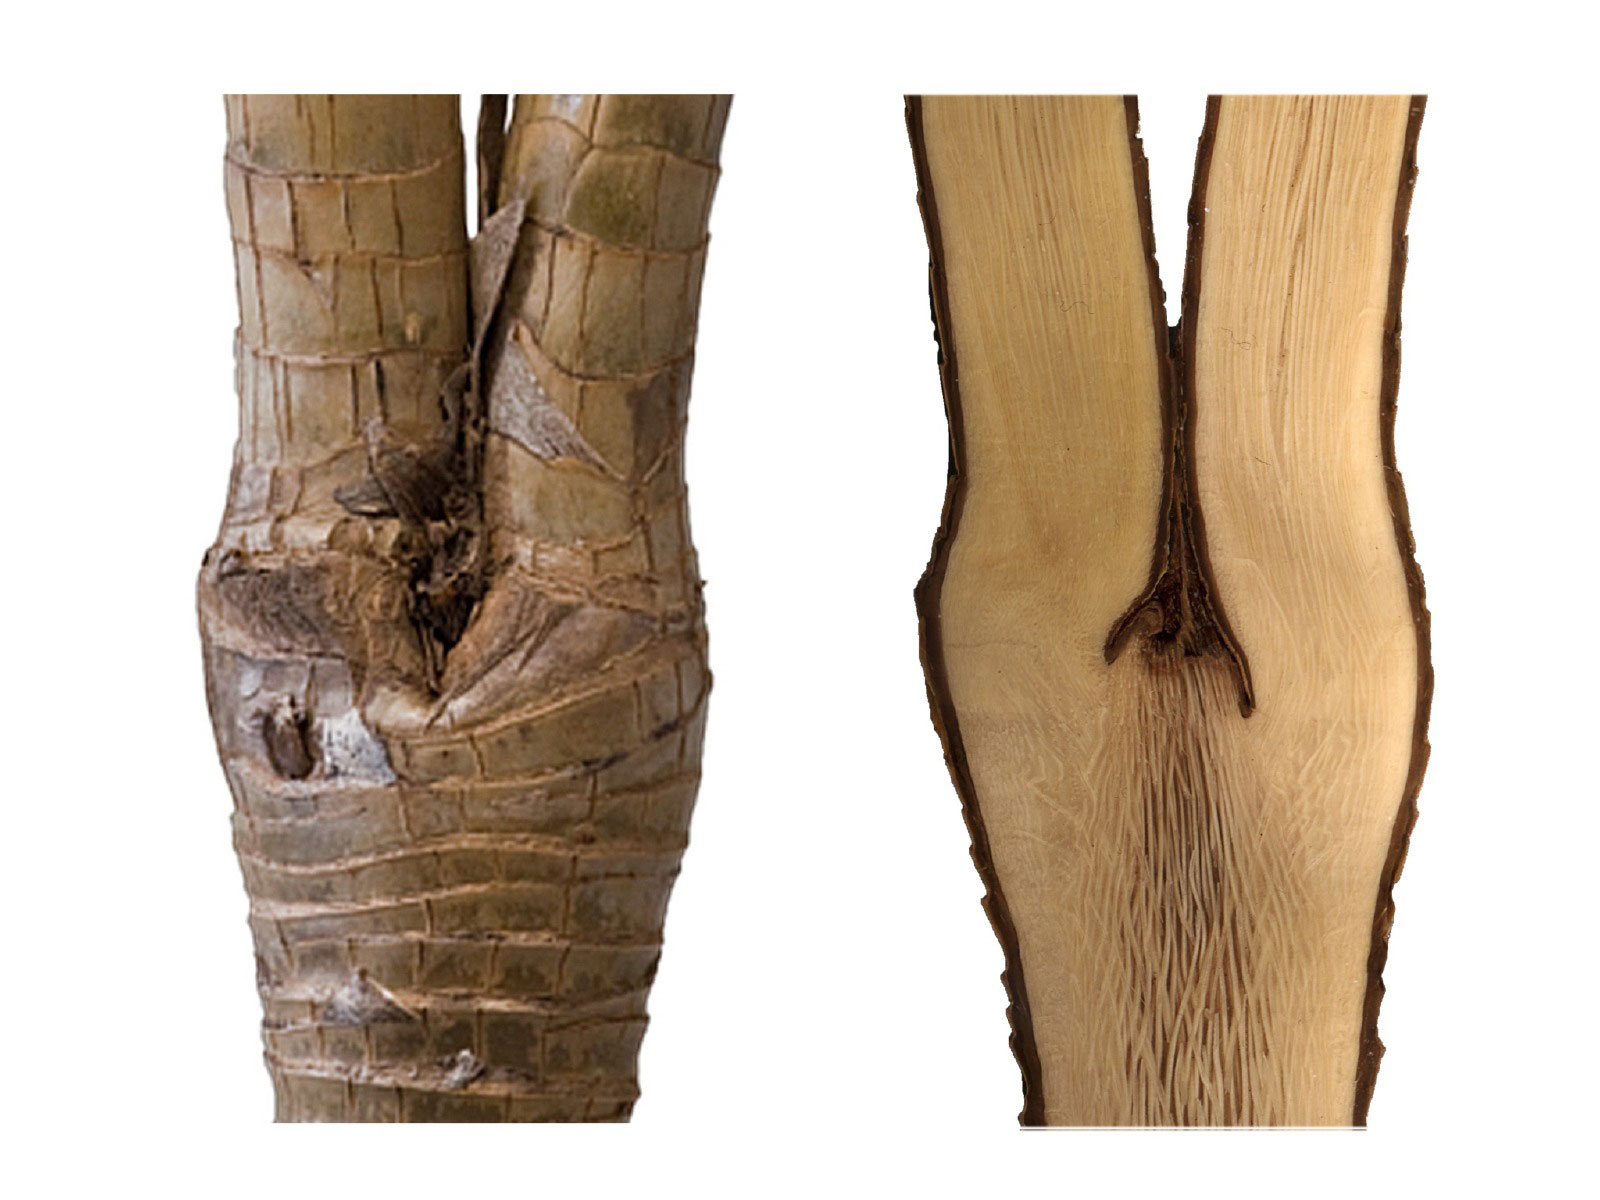 Branching of Dracaena fragans. Outer view of stem (left) and longitudinal section (right).